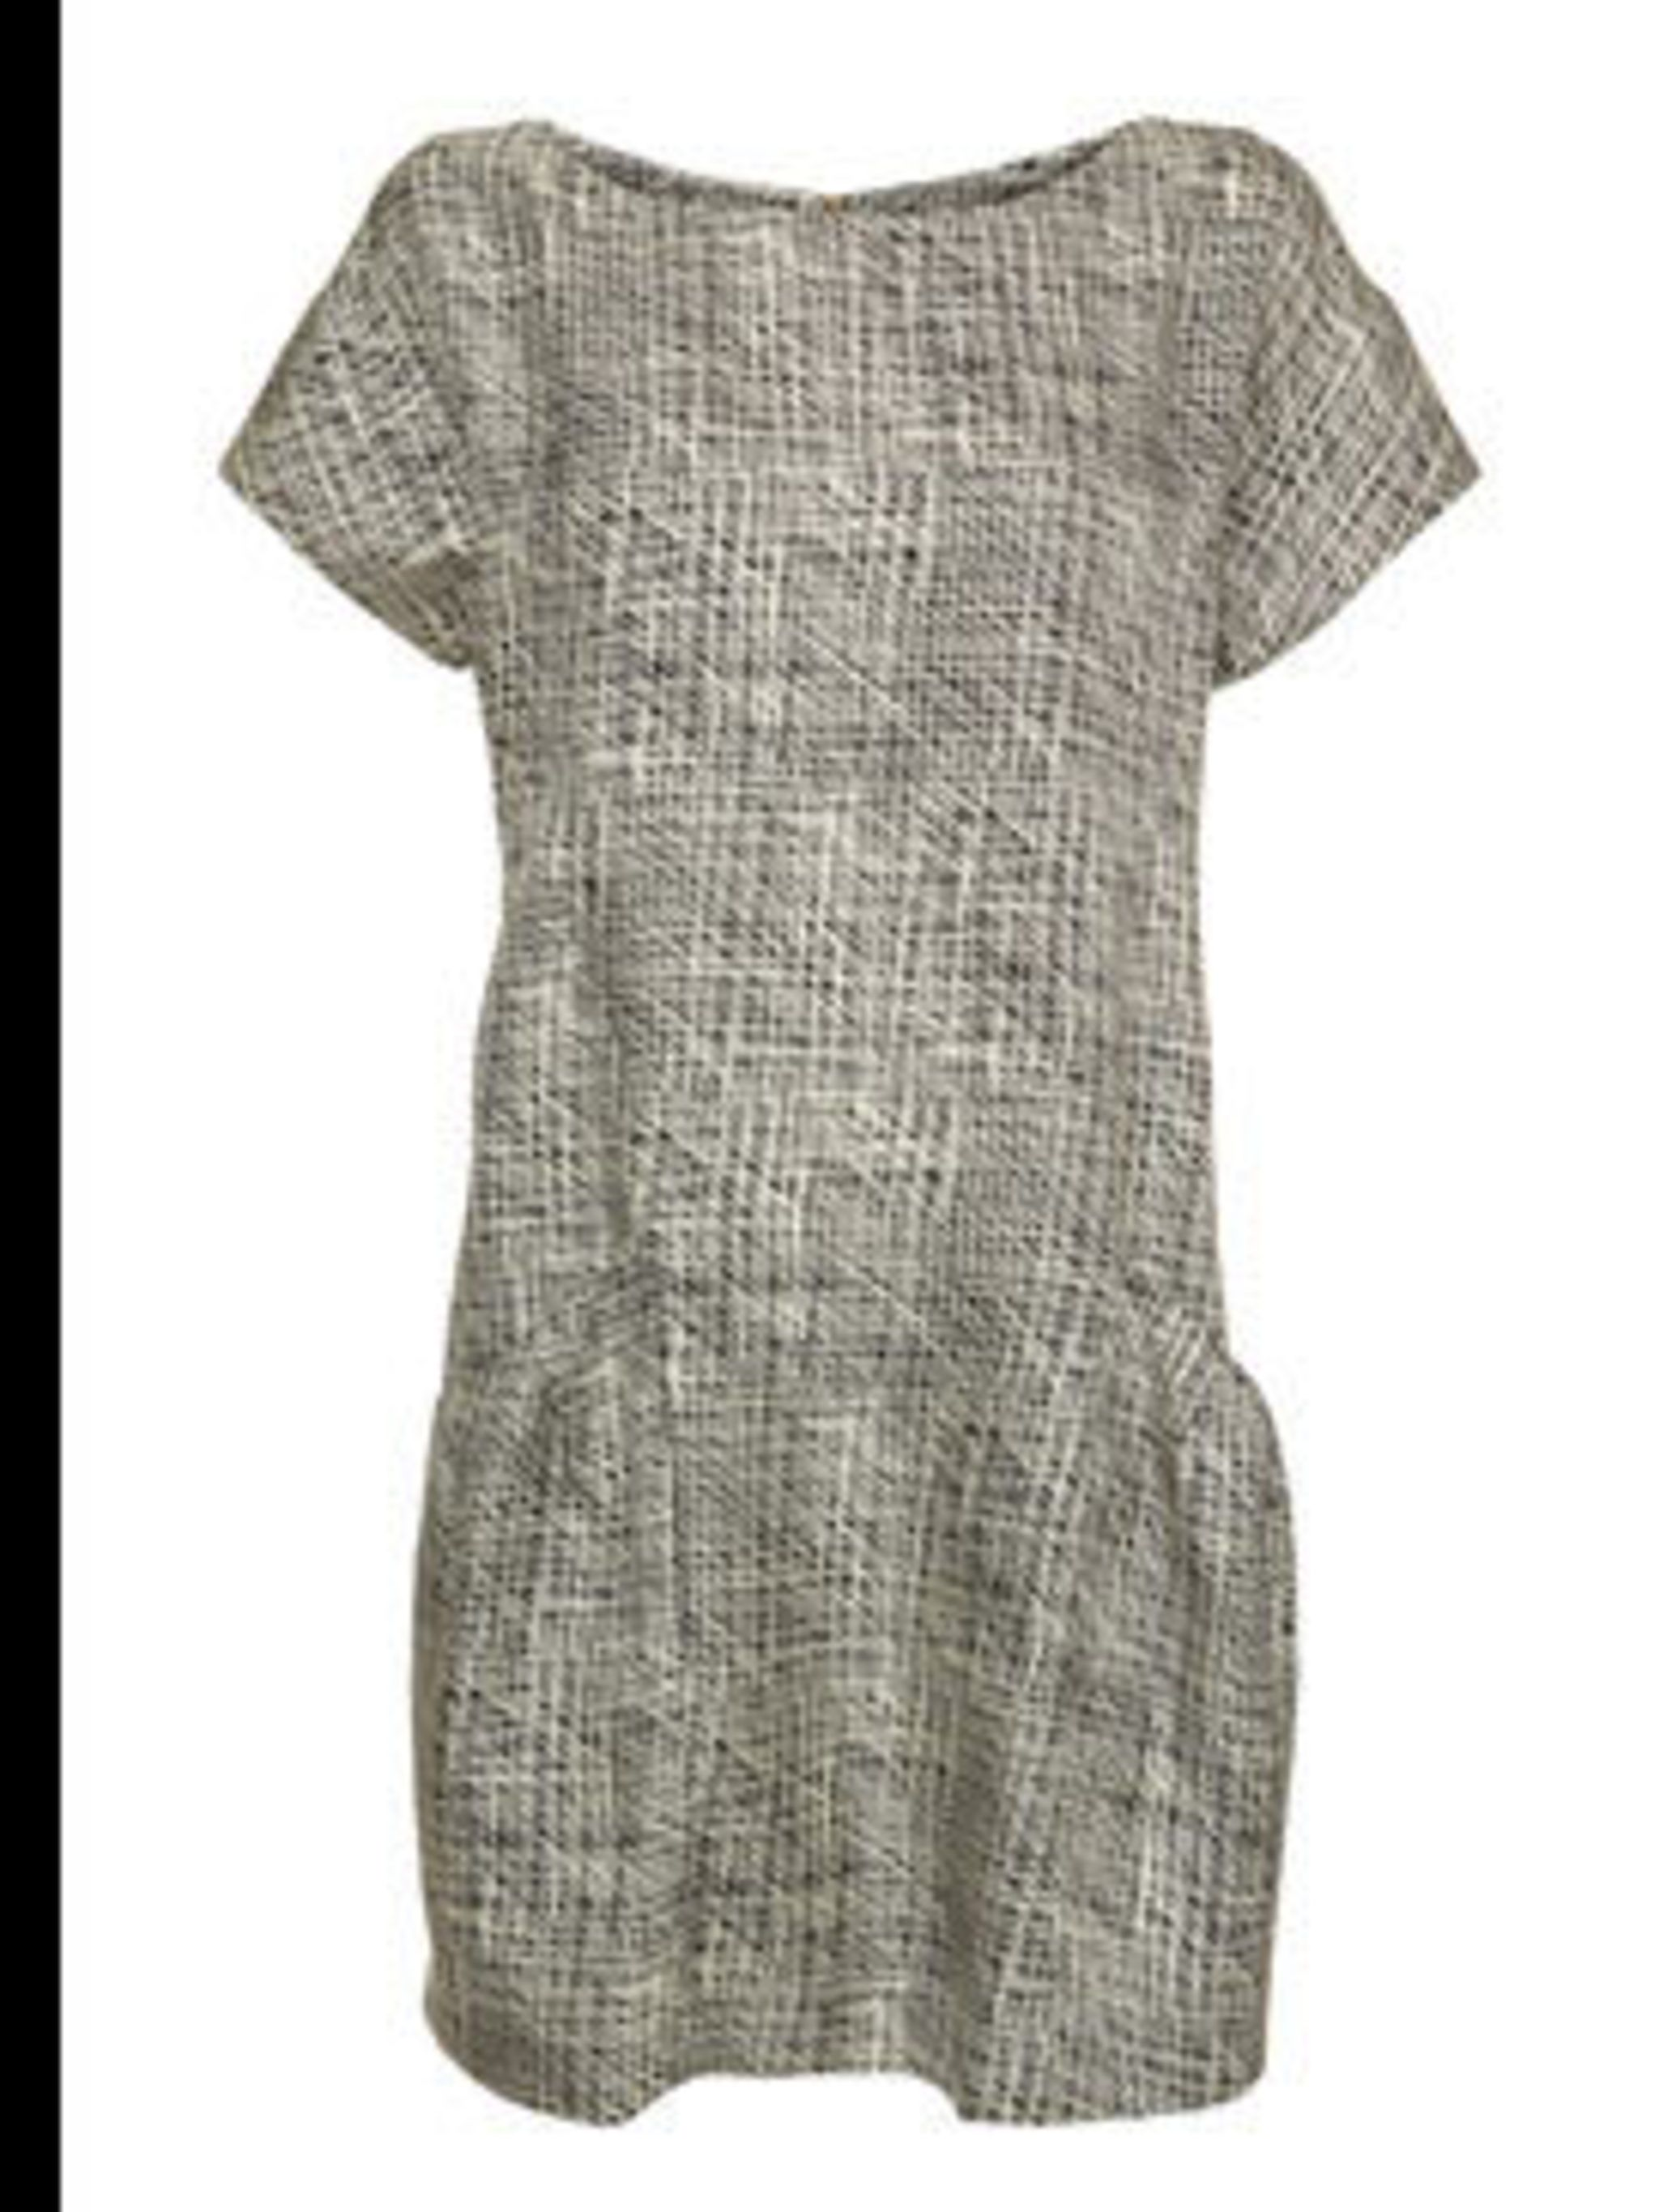 "<p>Dress, £110 by <a href=""http://www.whistles.co.uk/pws/Home.ice"">Whistles</a></p>"